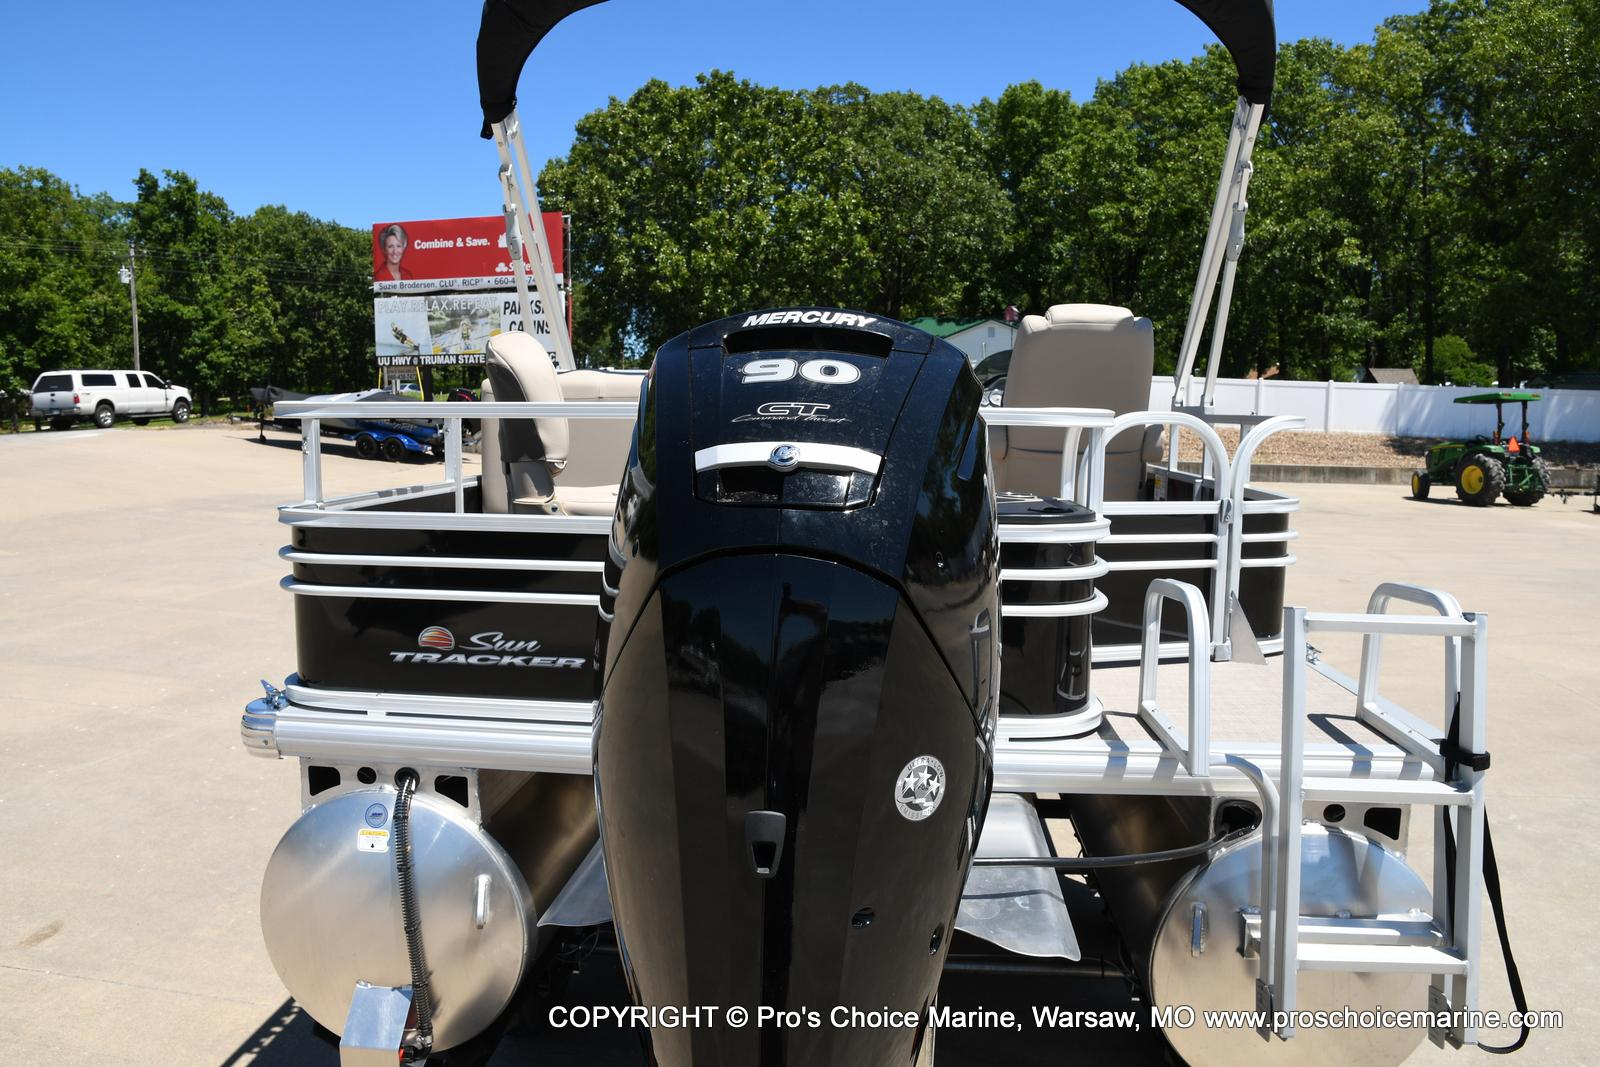 2021 Sun Tracker boat for sale, model of the boat is Fishin' Barge 20 DLX & Image # 6 of 50